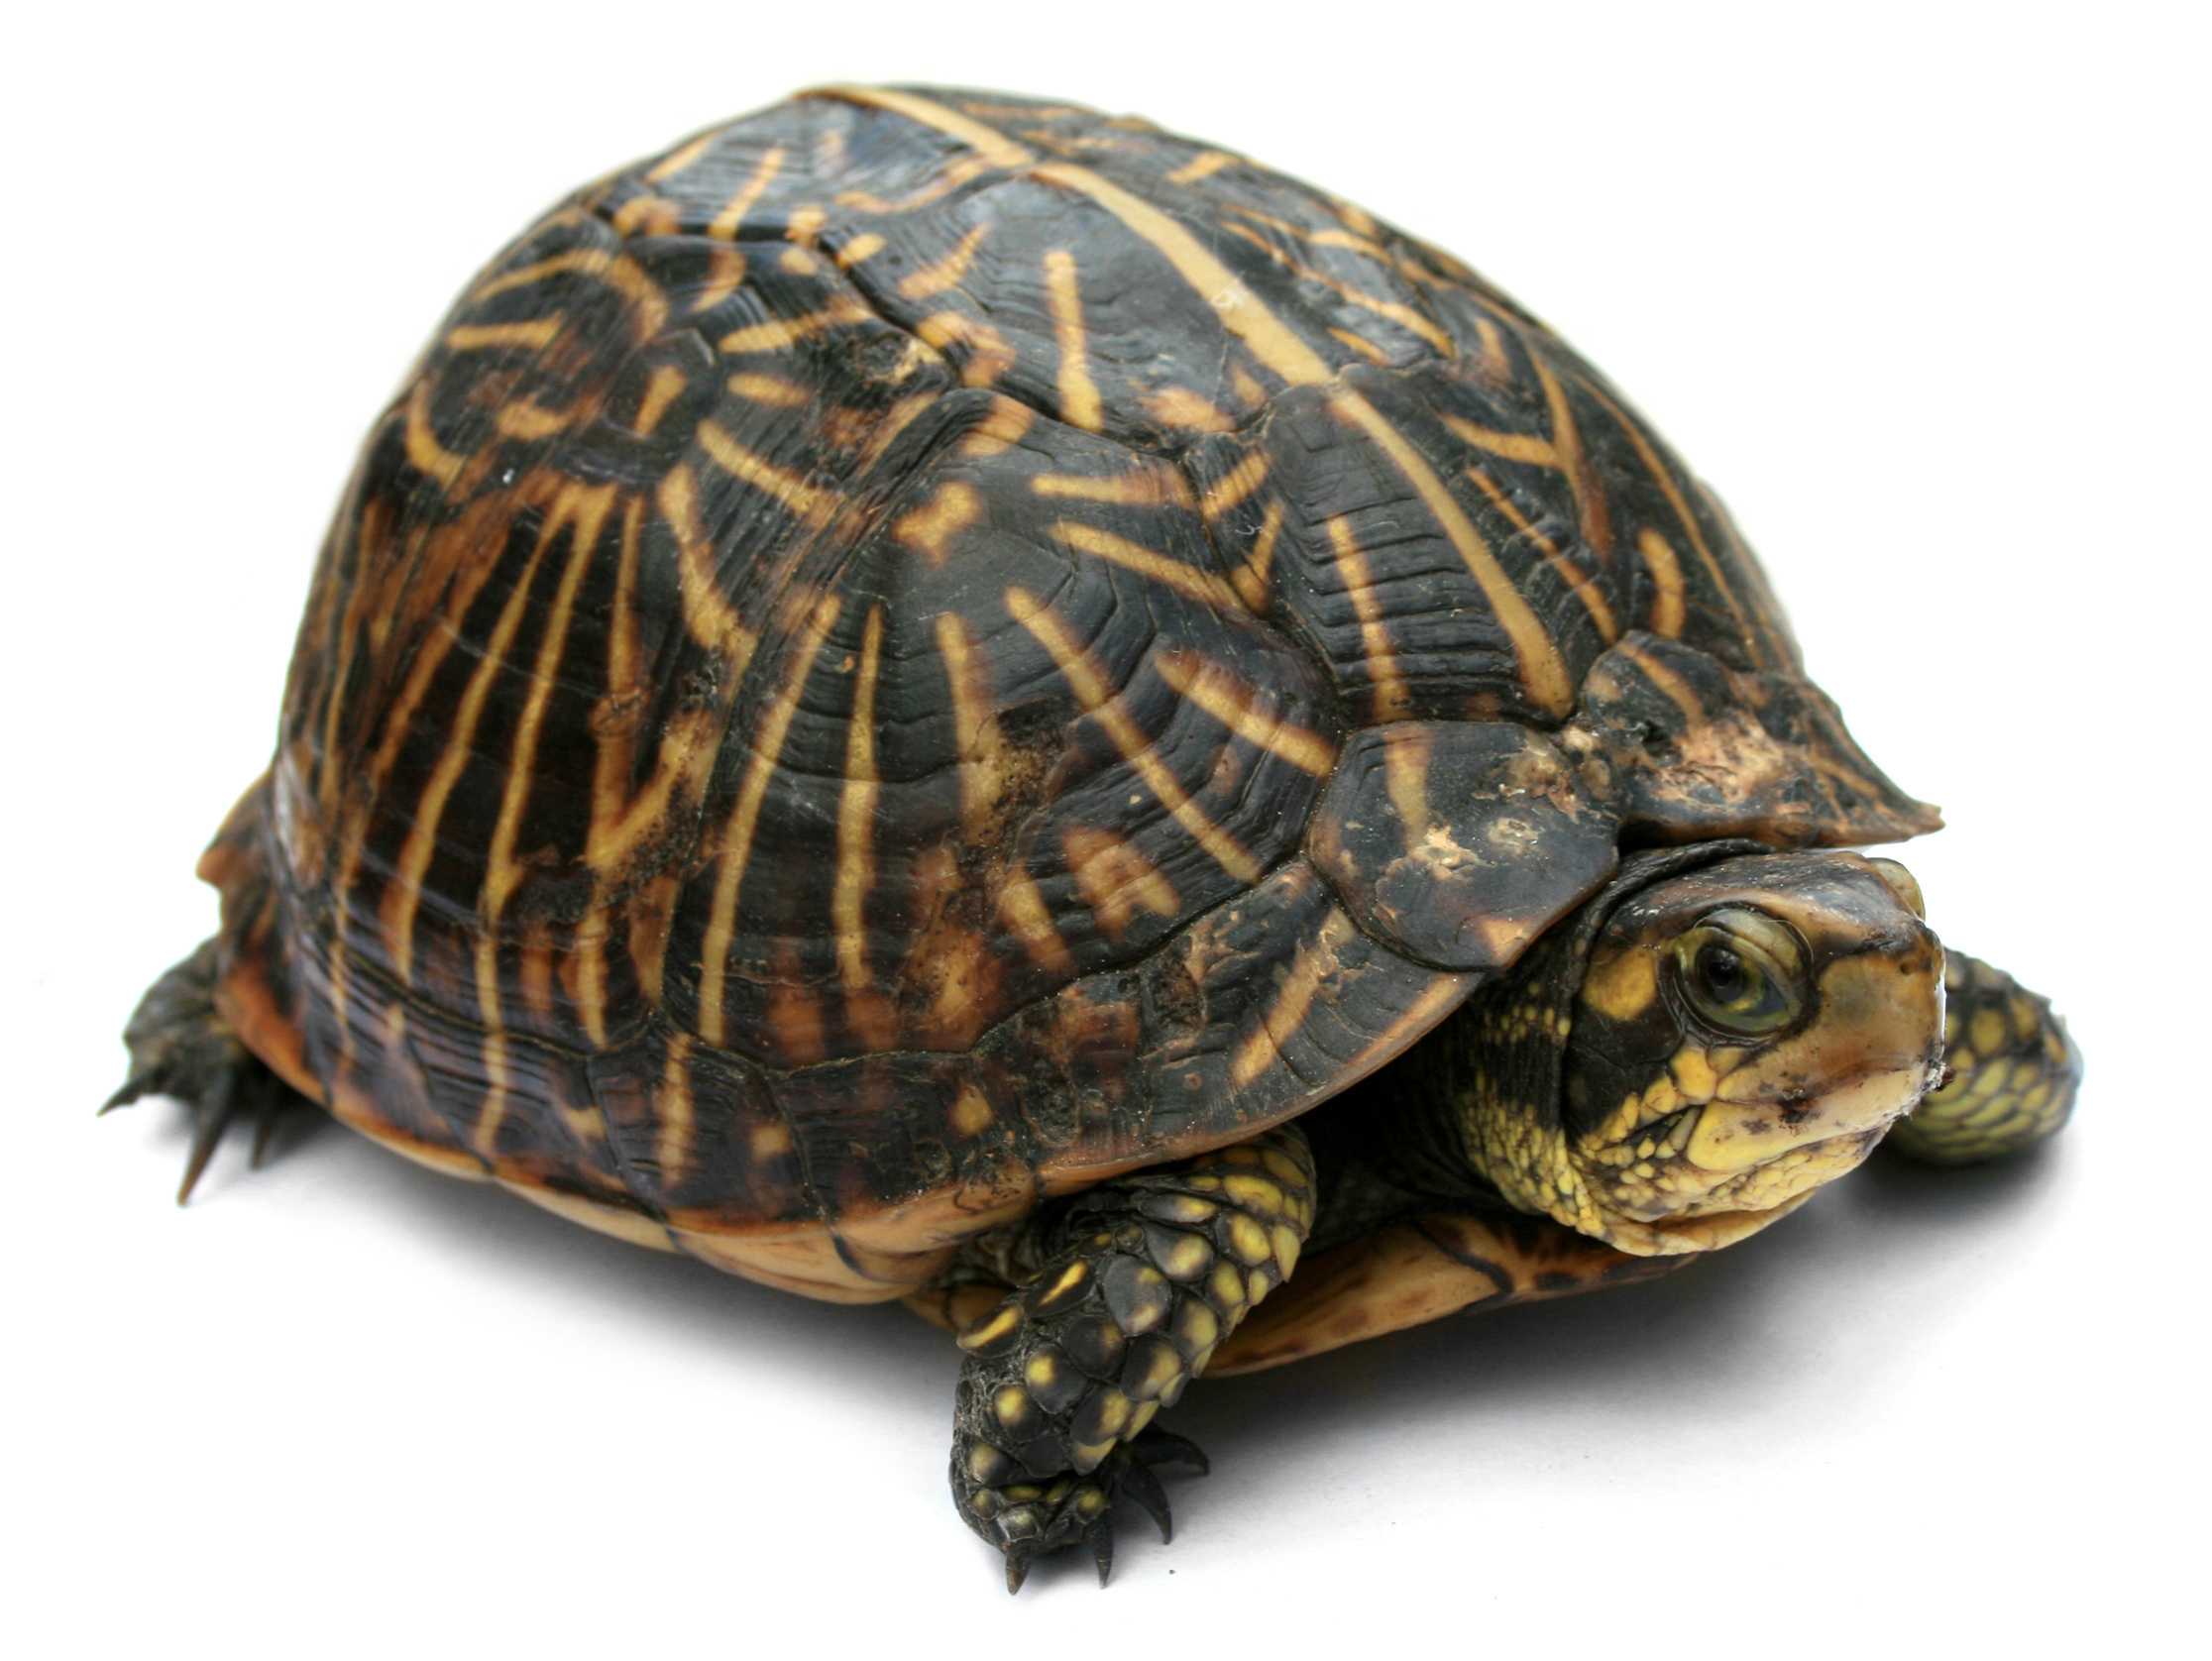 Bild: https://upload.wikimedia.org/wikipedia/commons/d/d9/Florida_Box_Turtle_Digon3a.jpg